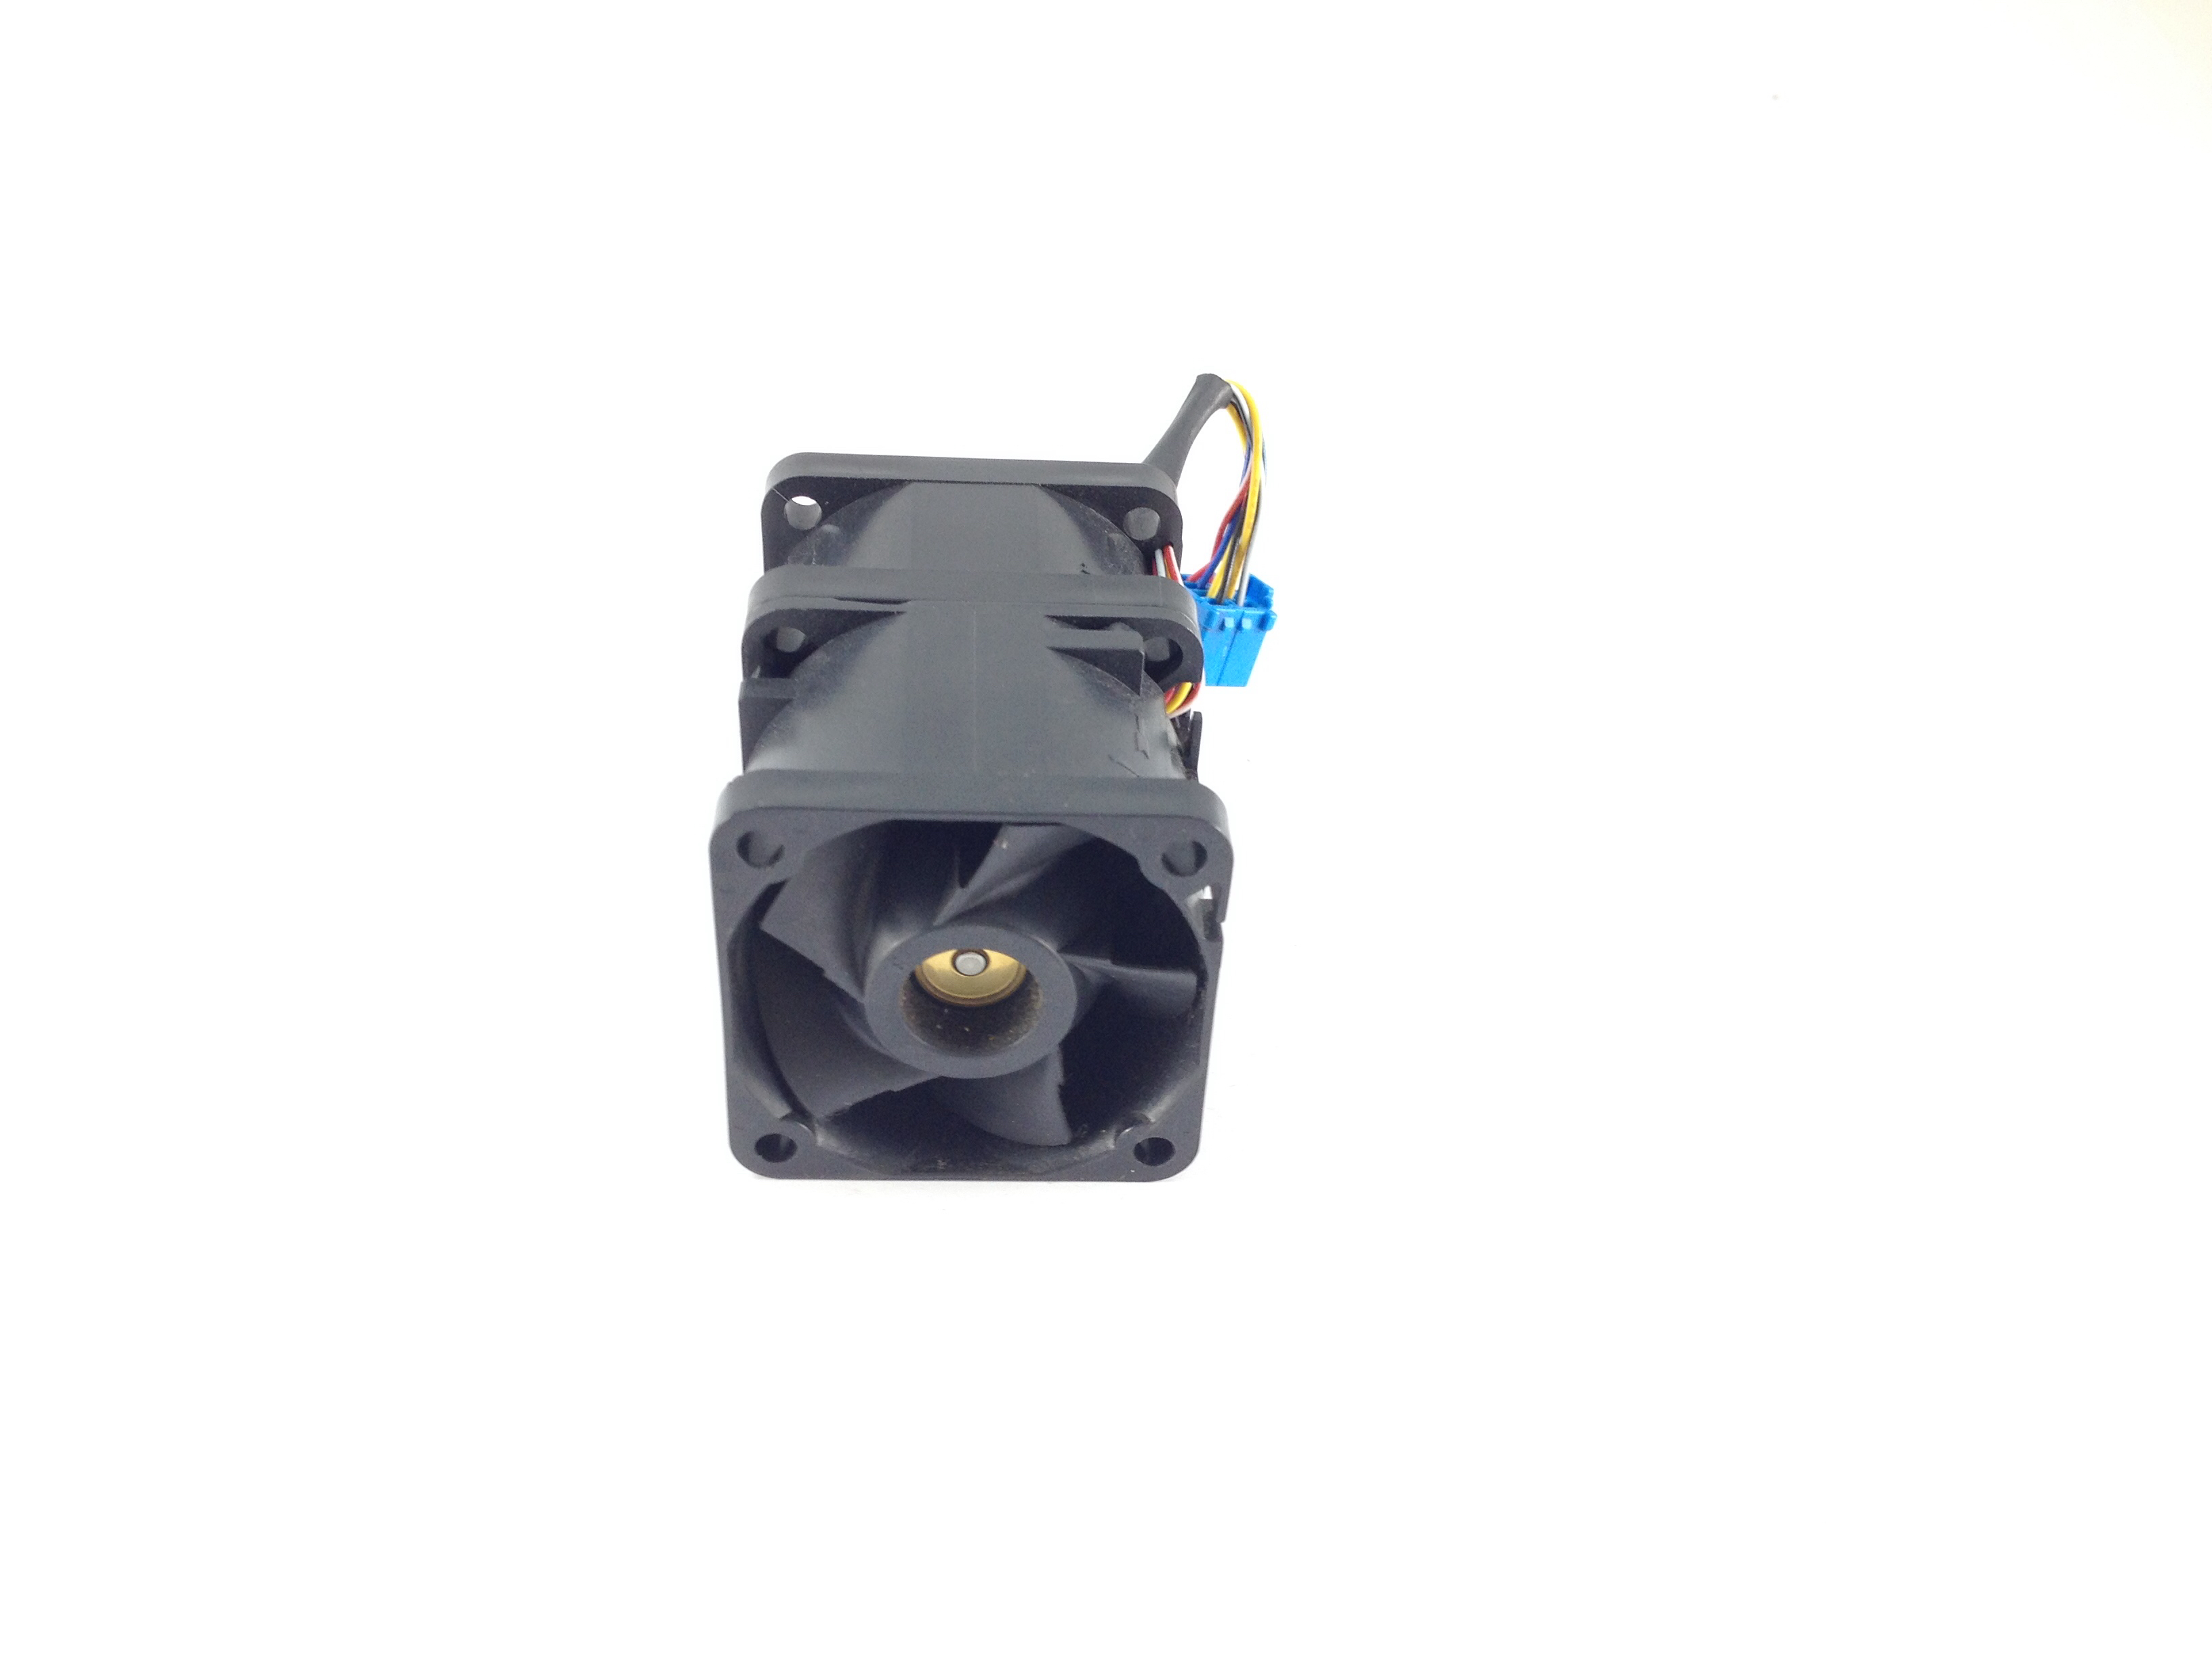 Dell PowerEdge R310 Cooling Fan (G435M)